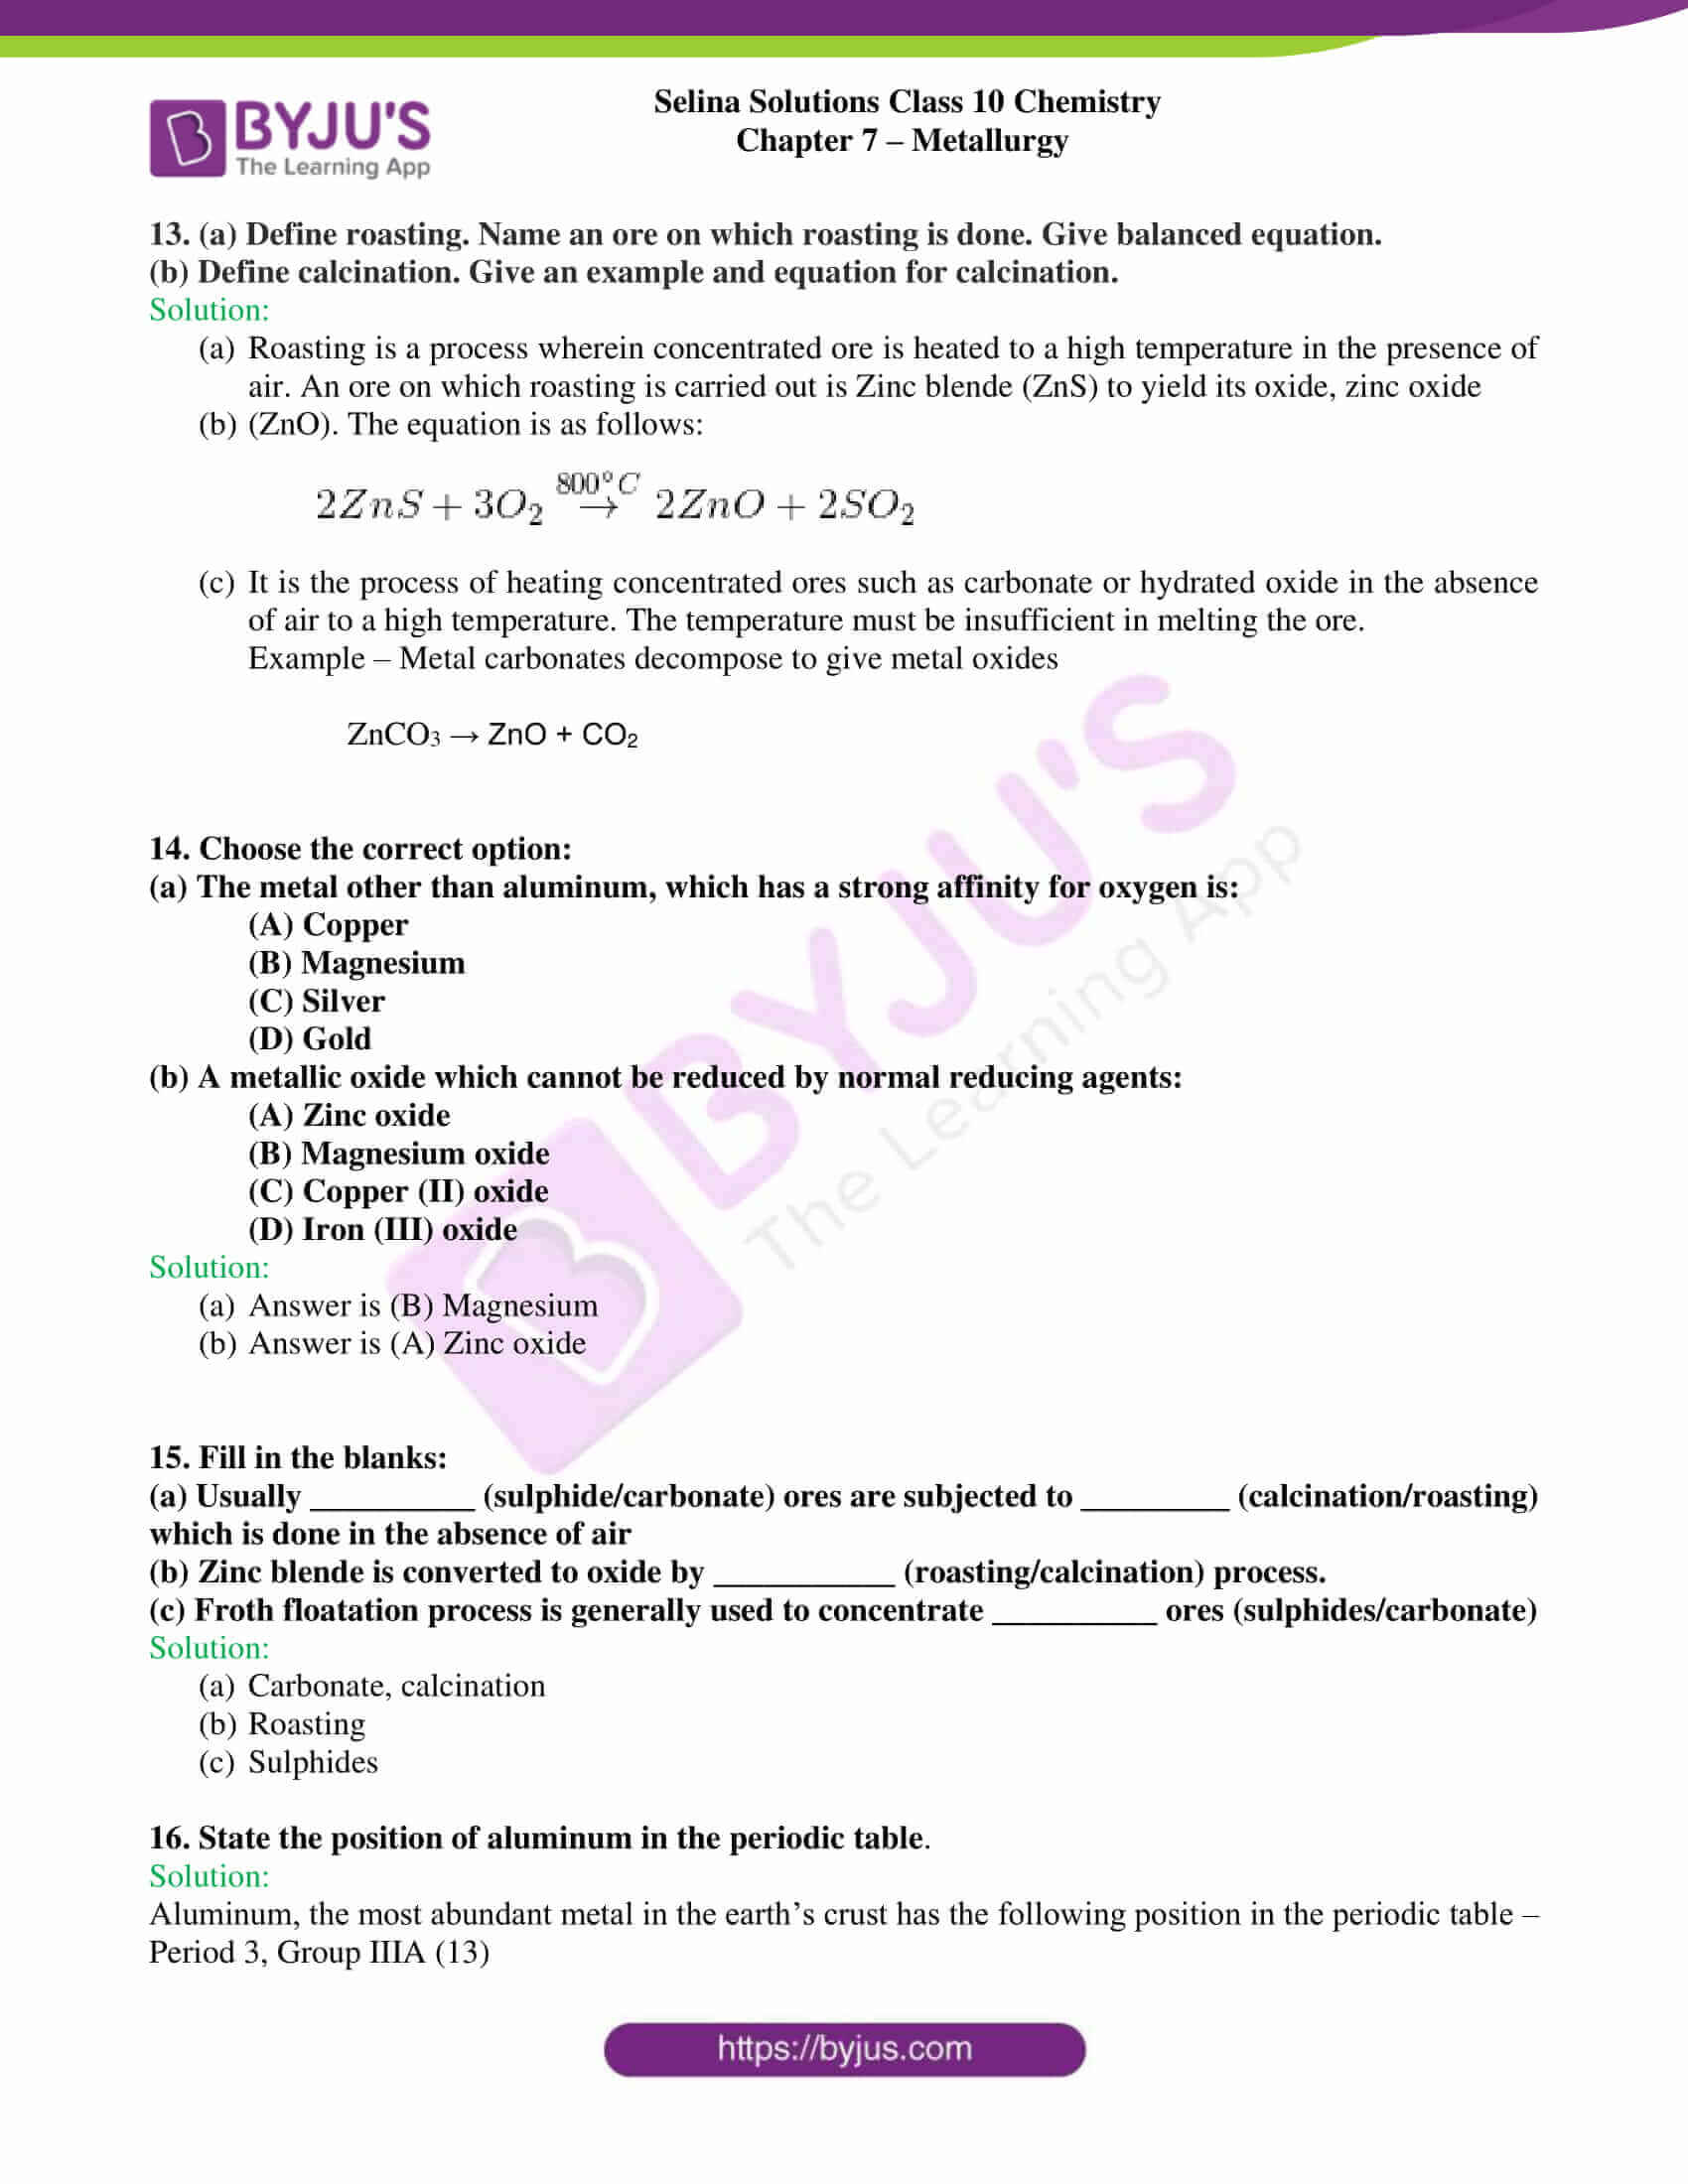 selina sol concise chem class 10 ch 7 4